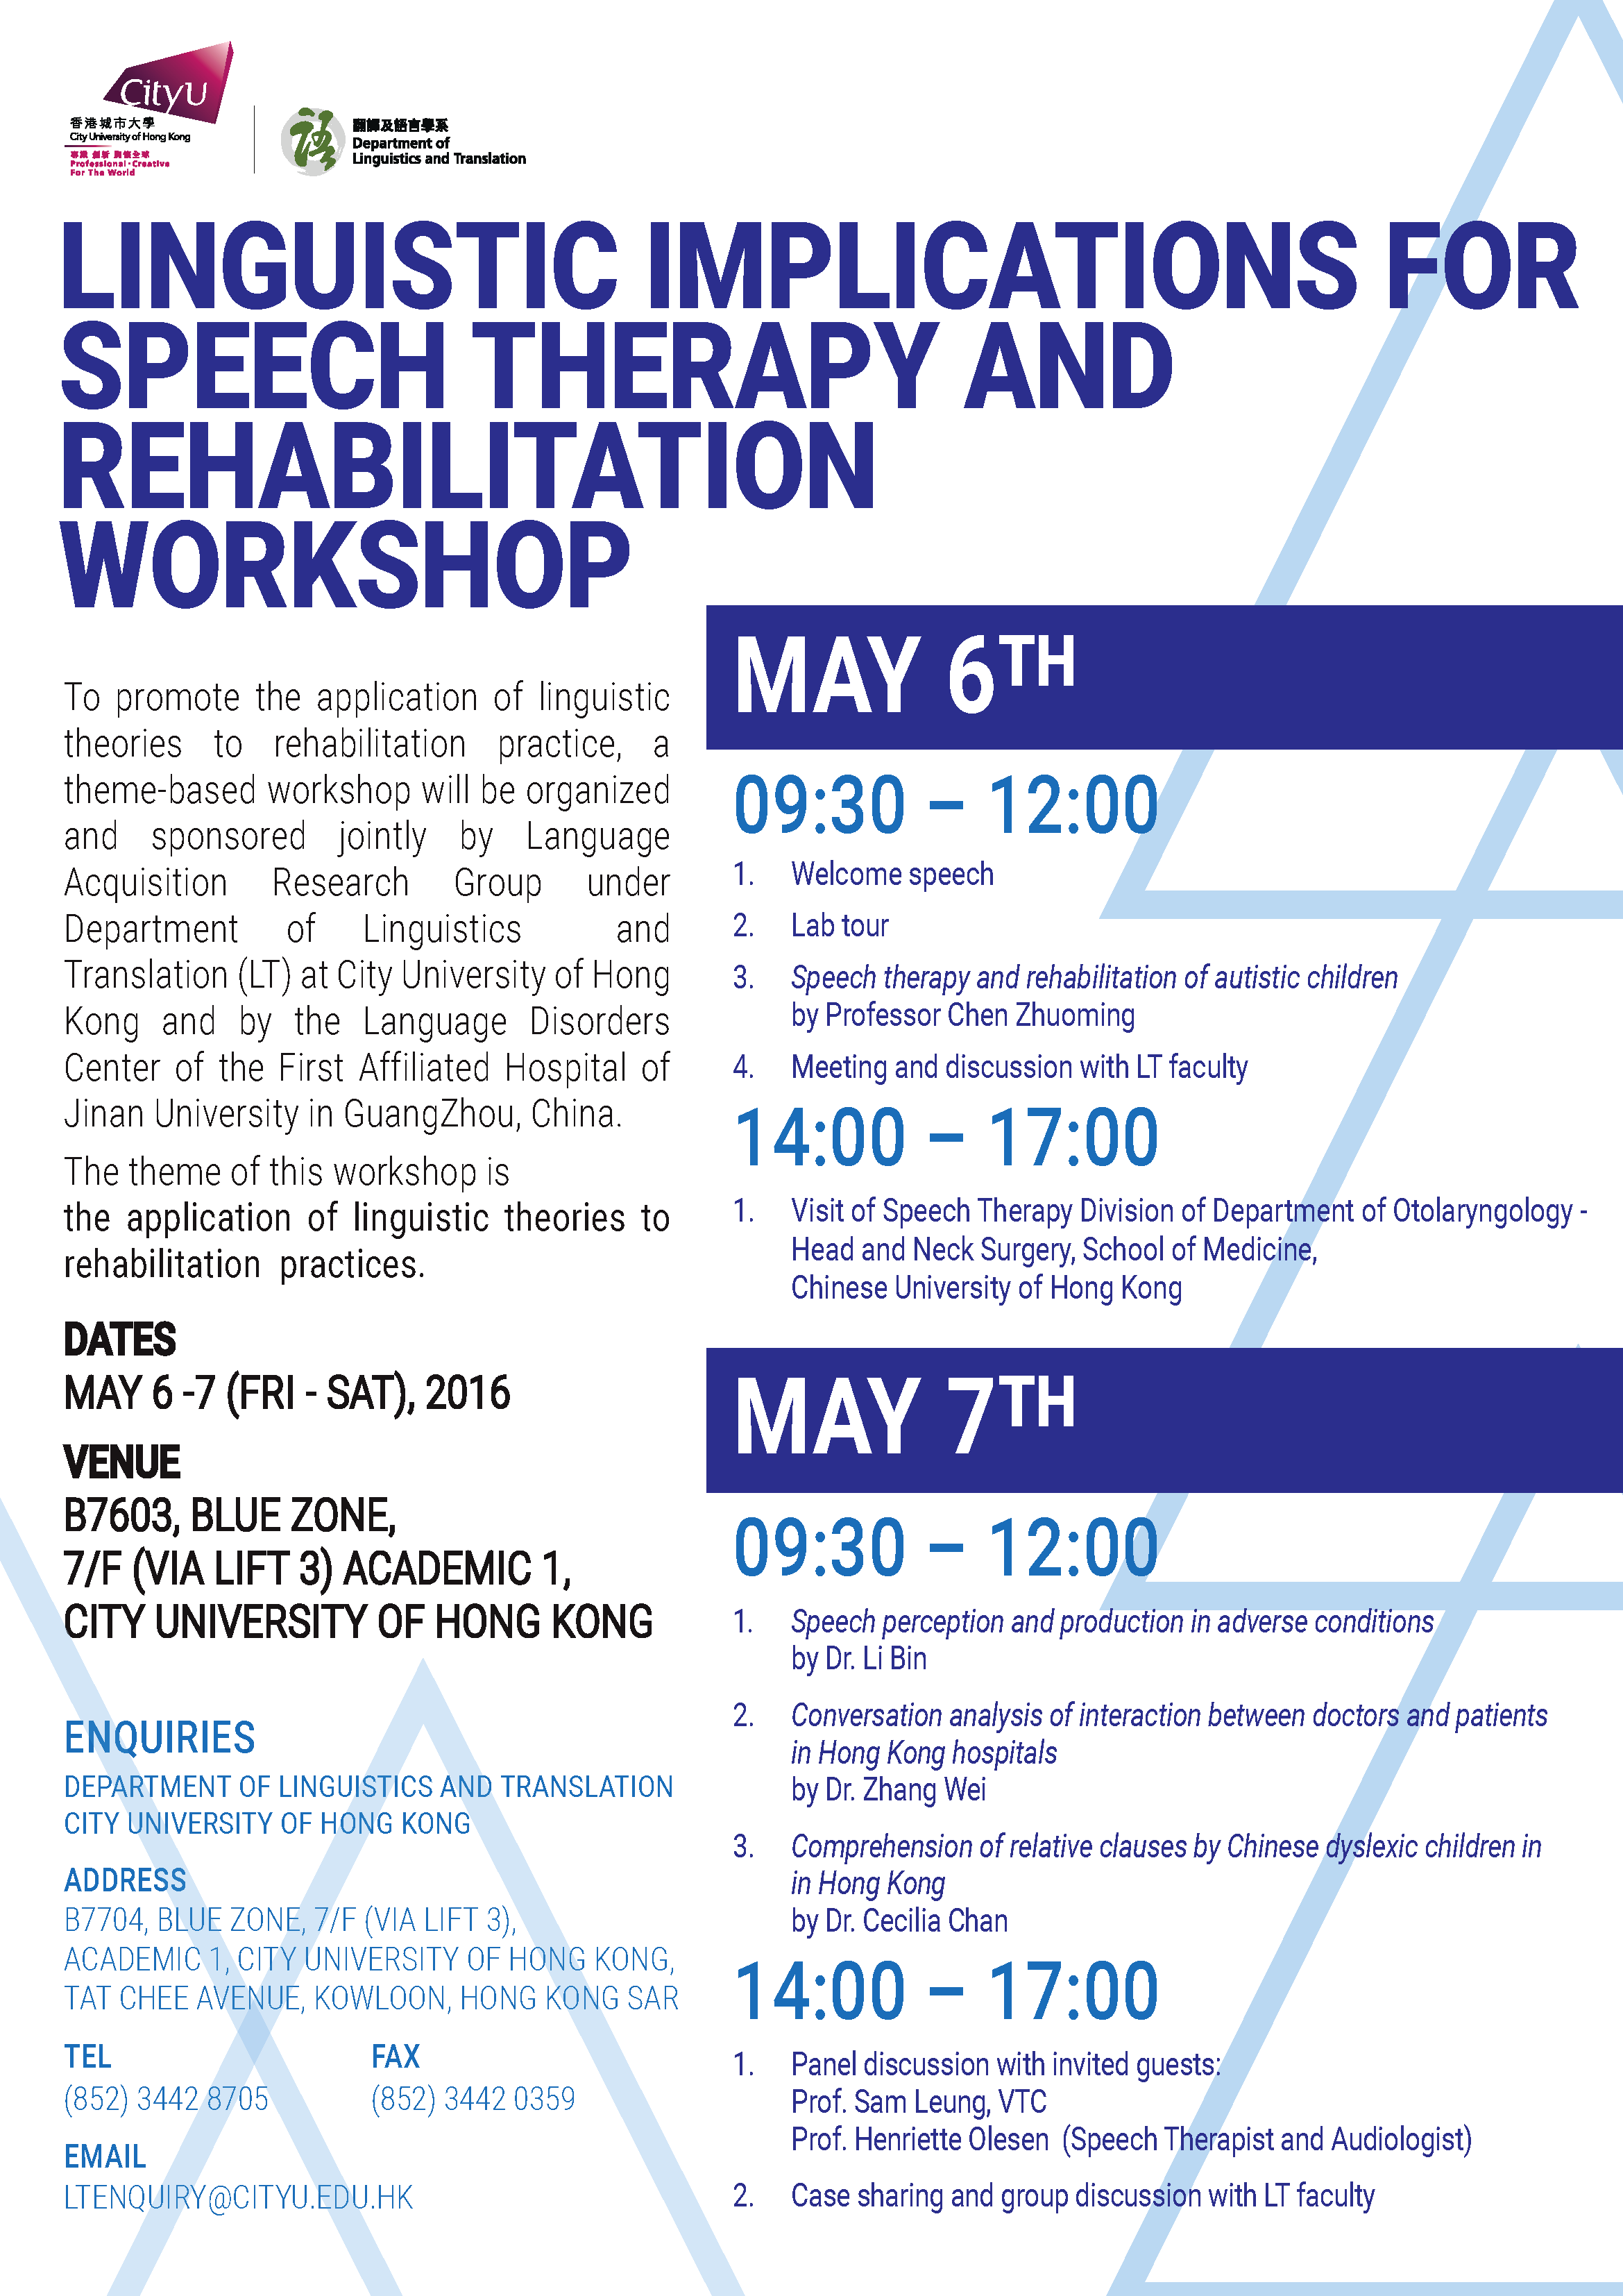 Linguistic Implications for Speech Therapy and Rehabilitation Workshop